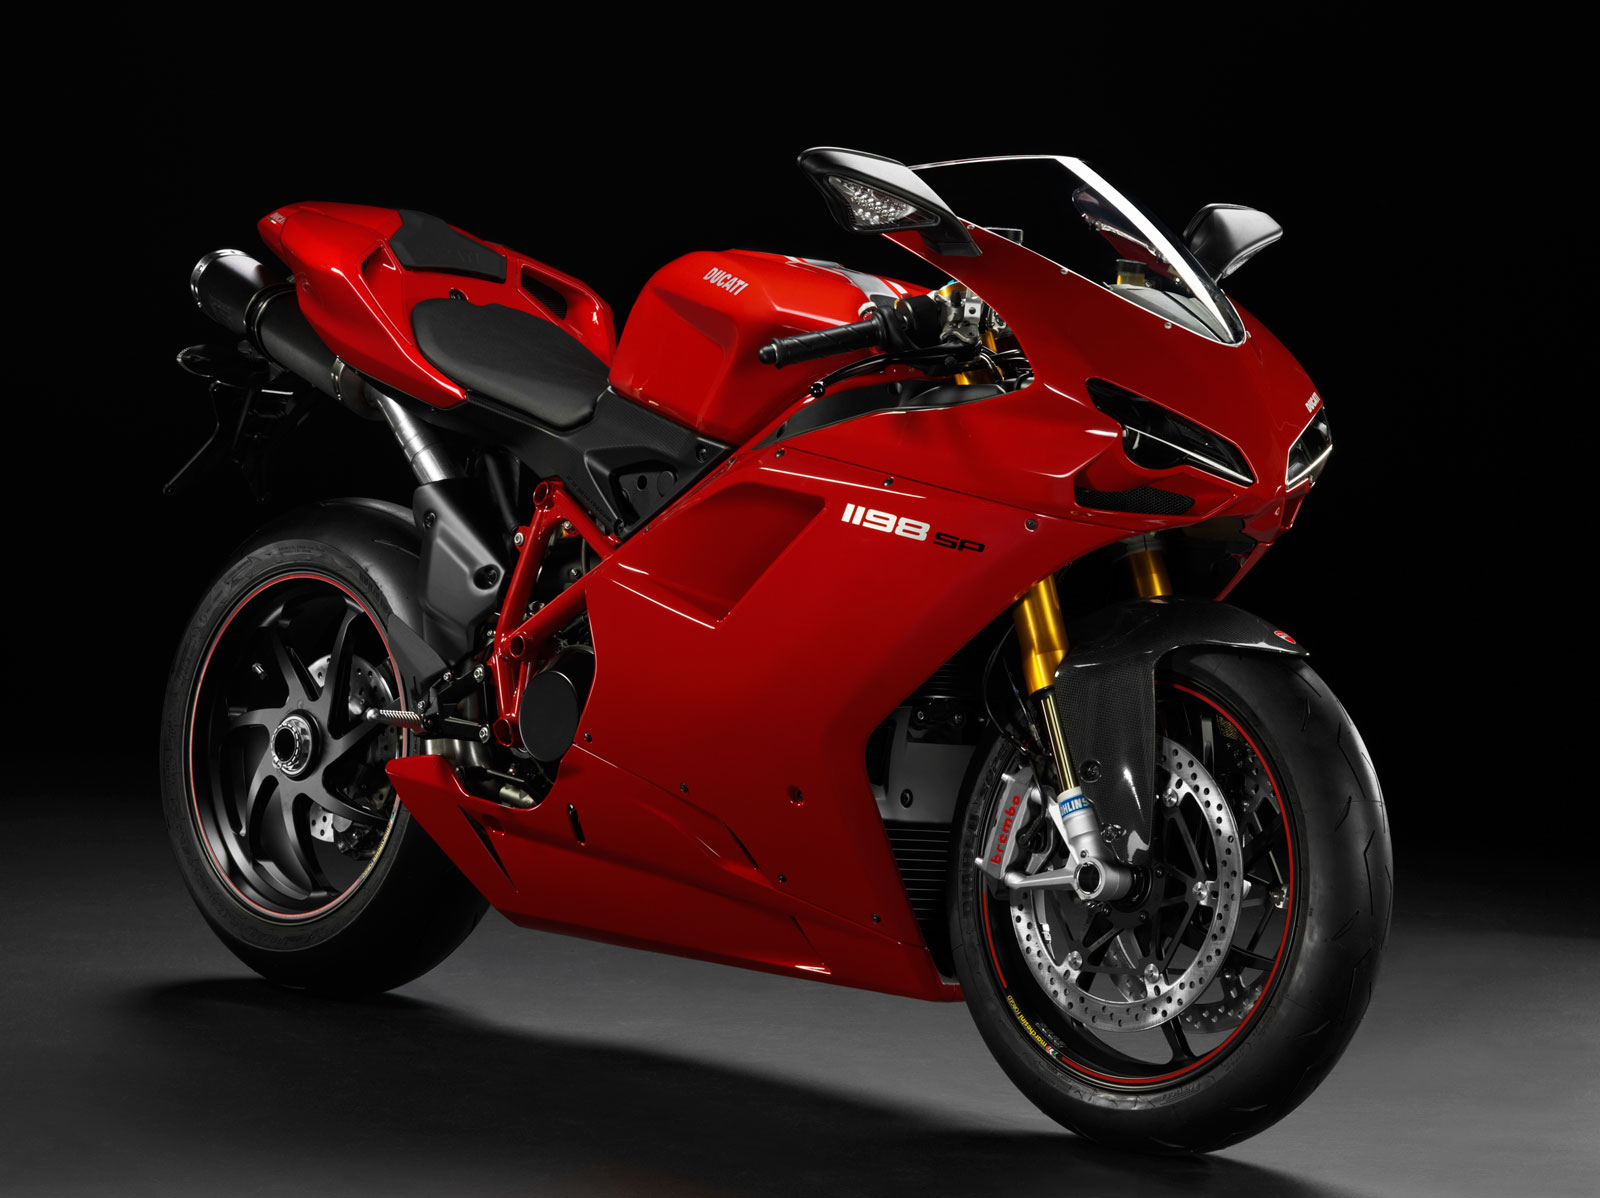 You see, Ducati builds things like this, the 1198 SP